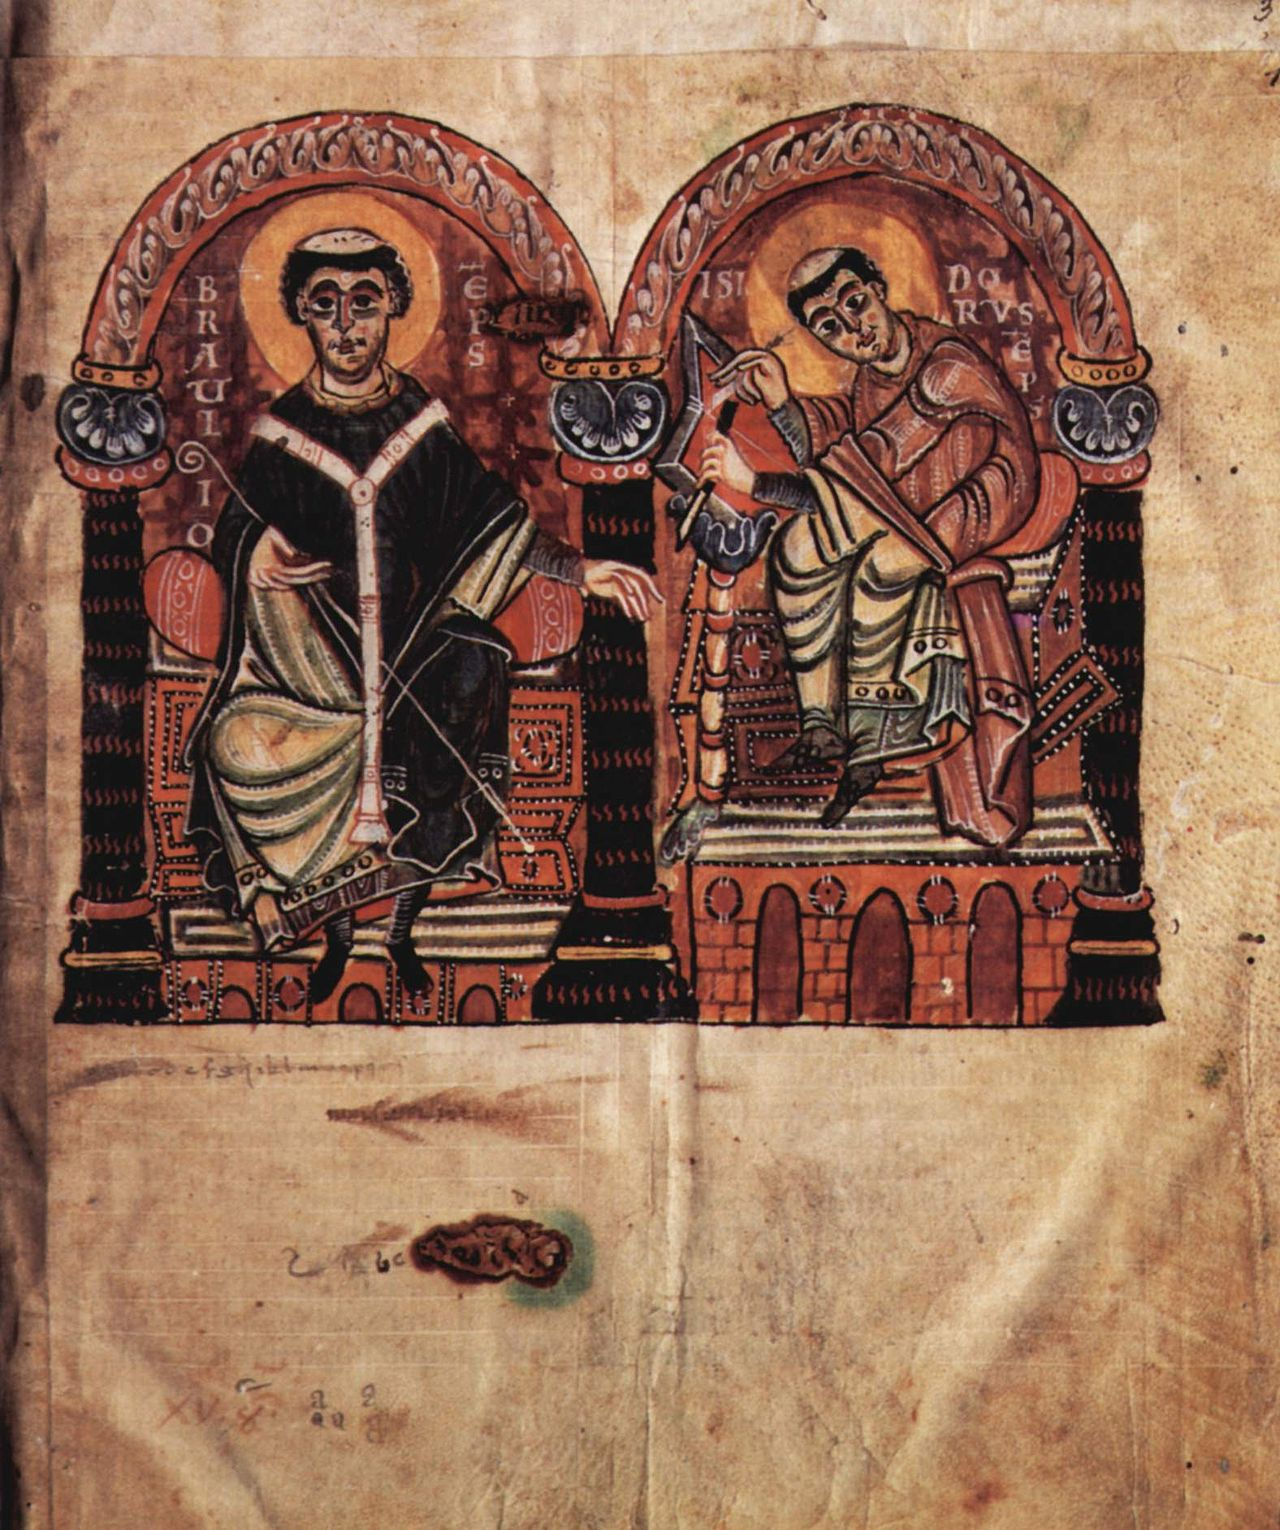 Isidore (right) and Braulio (left) in an Ottonian illuminated manuscript from the 2nd half of the 10th century